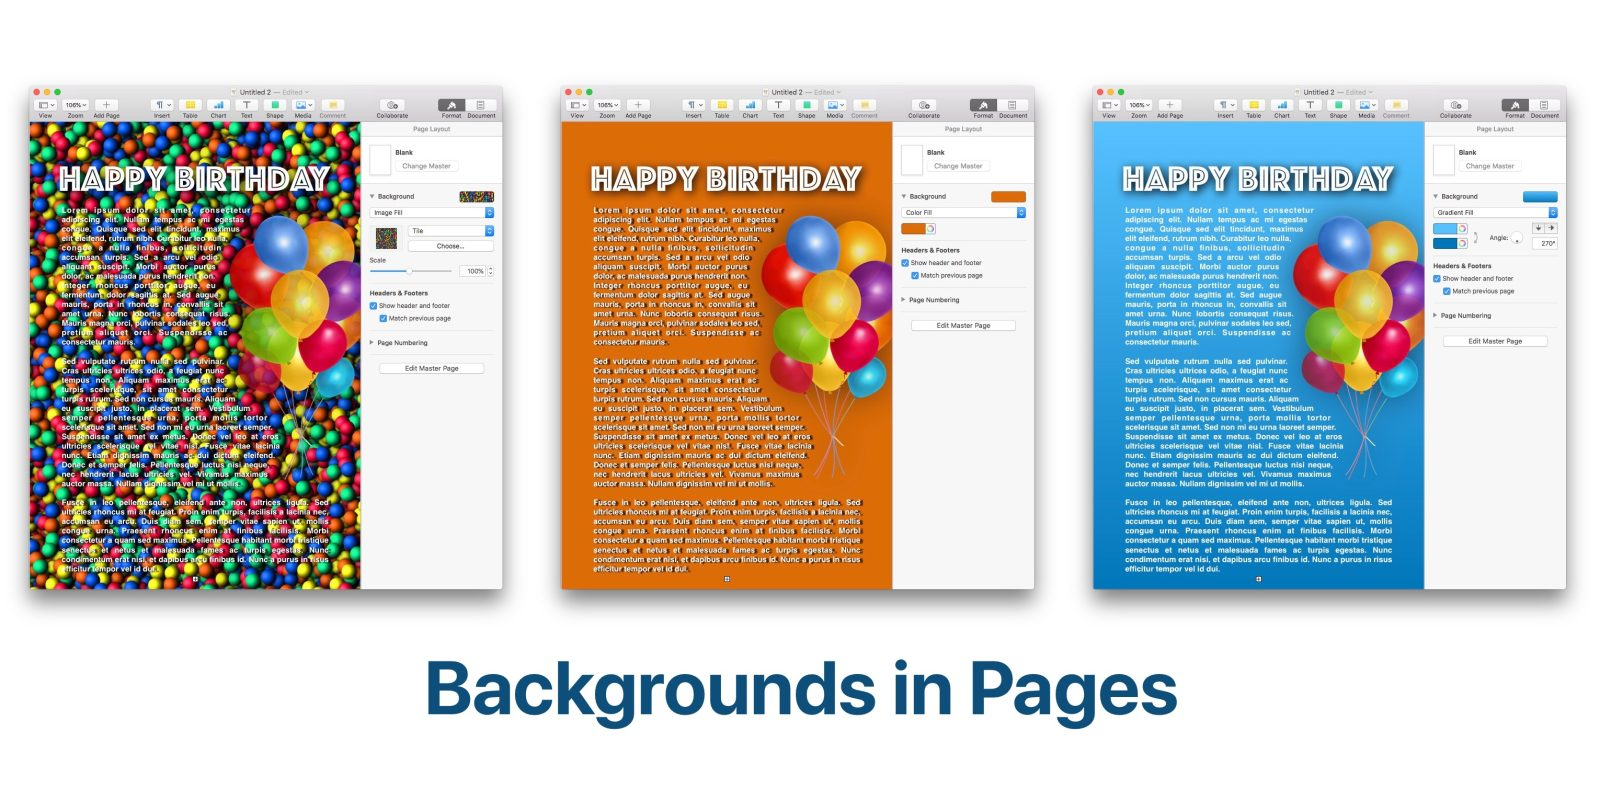 How to change background color in Pages.